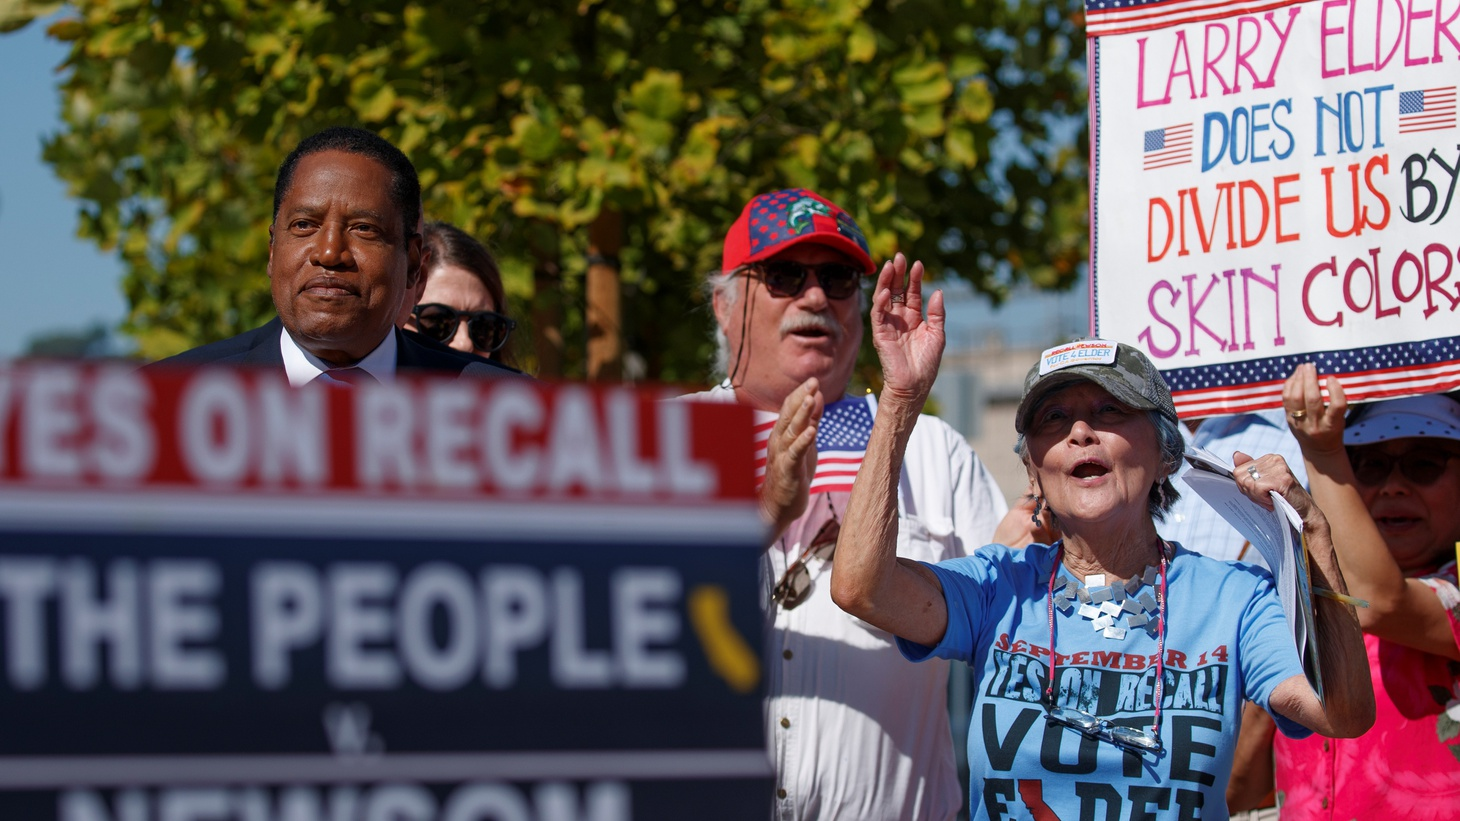 """During a recall campaign rally by gubernatorial candidate Larry Elder, a woman holds a sign saying, """"Larry Elder does not divide us by skin color,"""" in Monterey Park, California, U.S., September 13, 2021."""